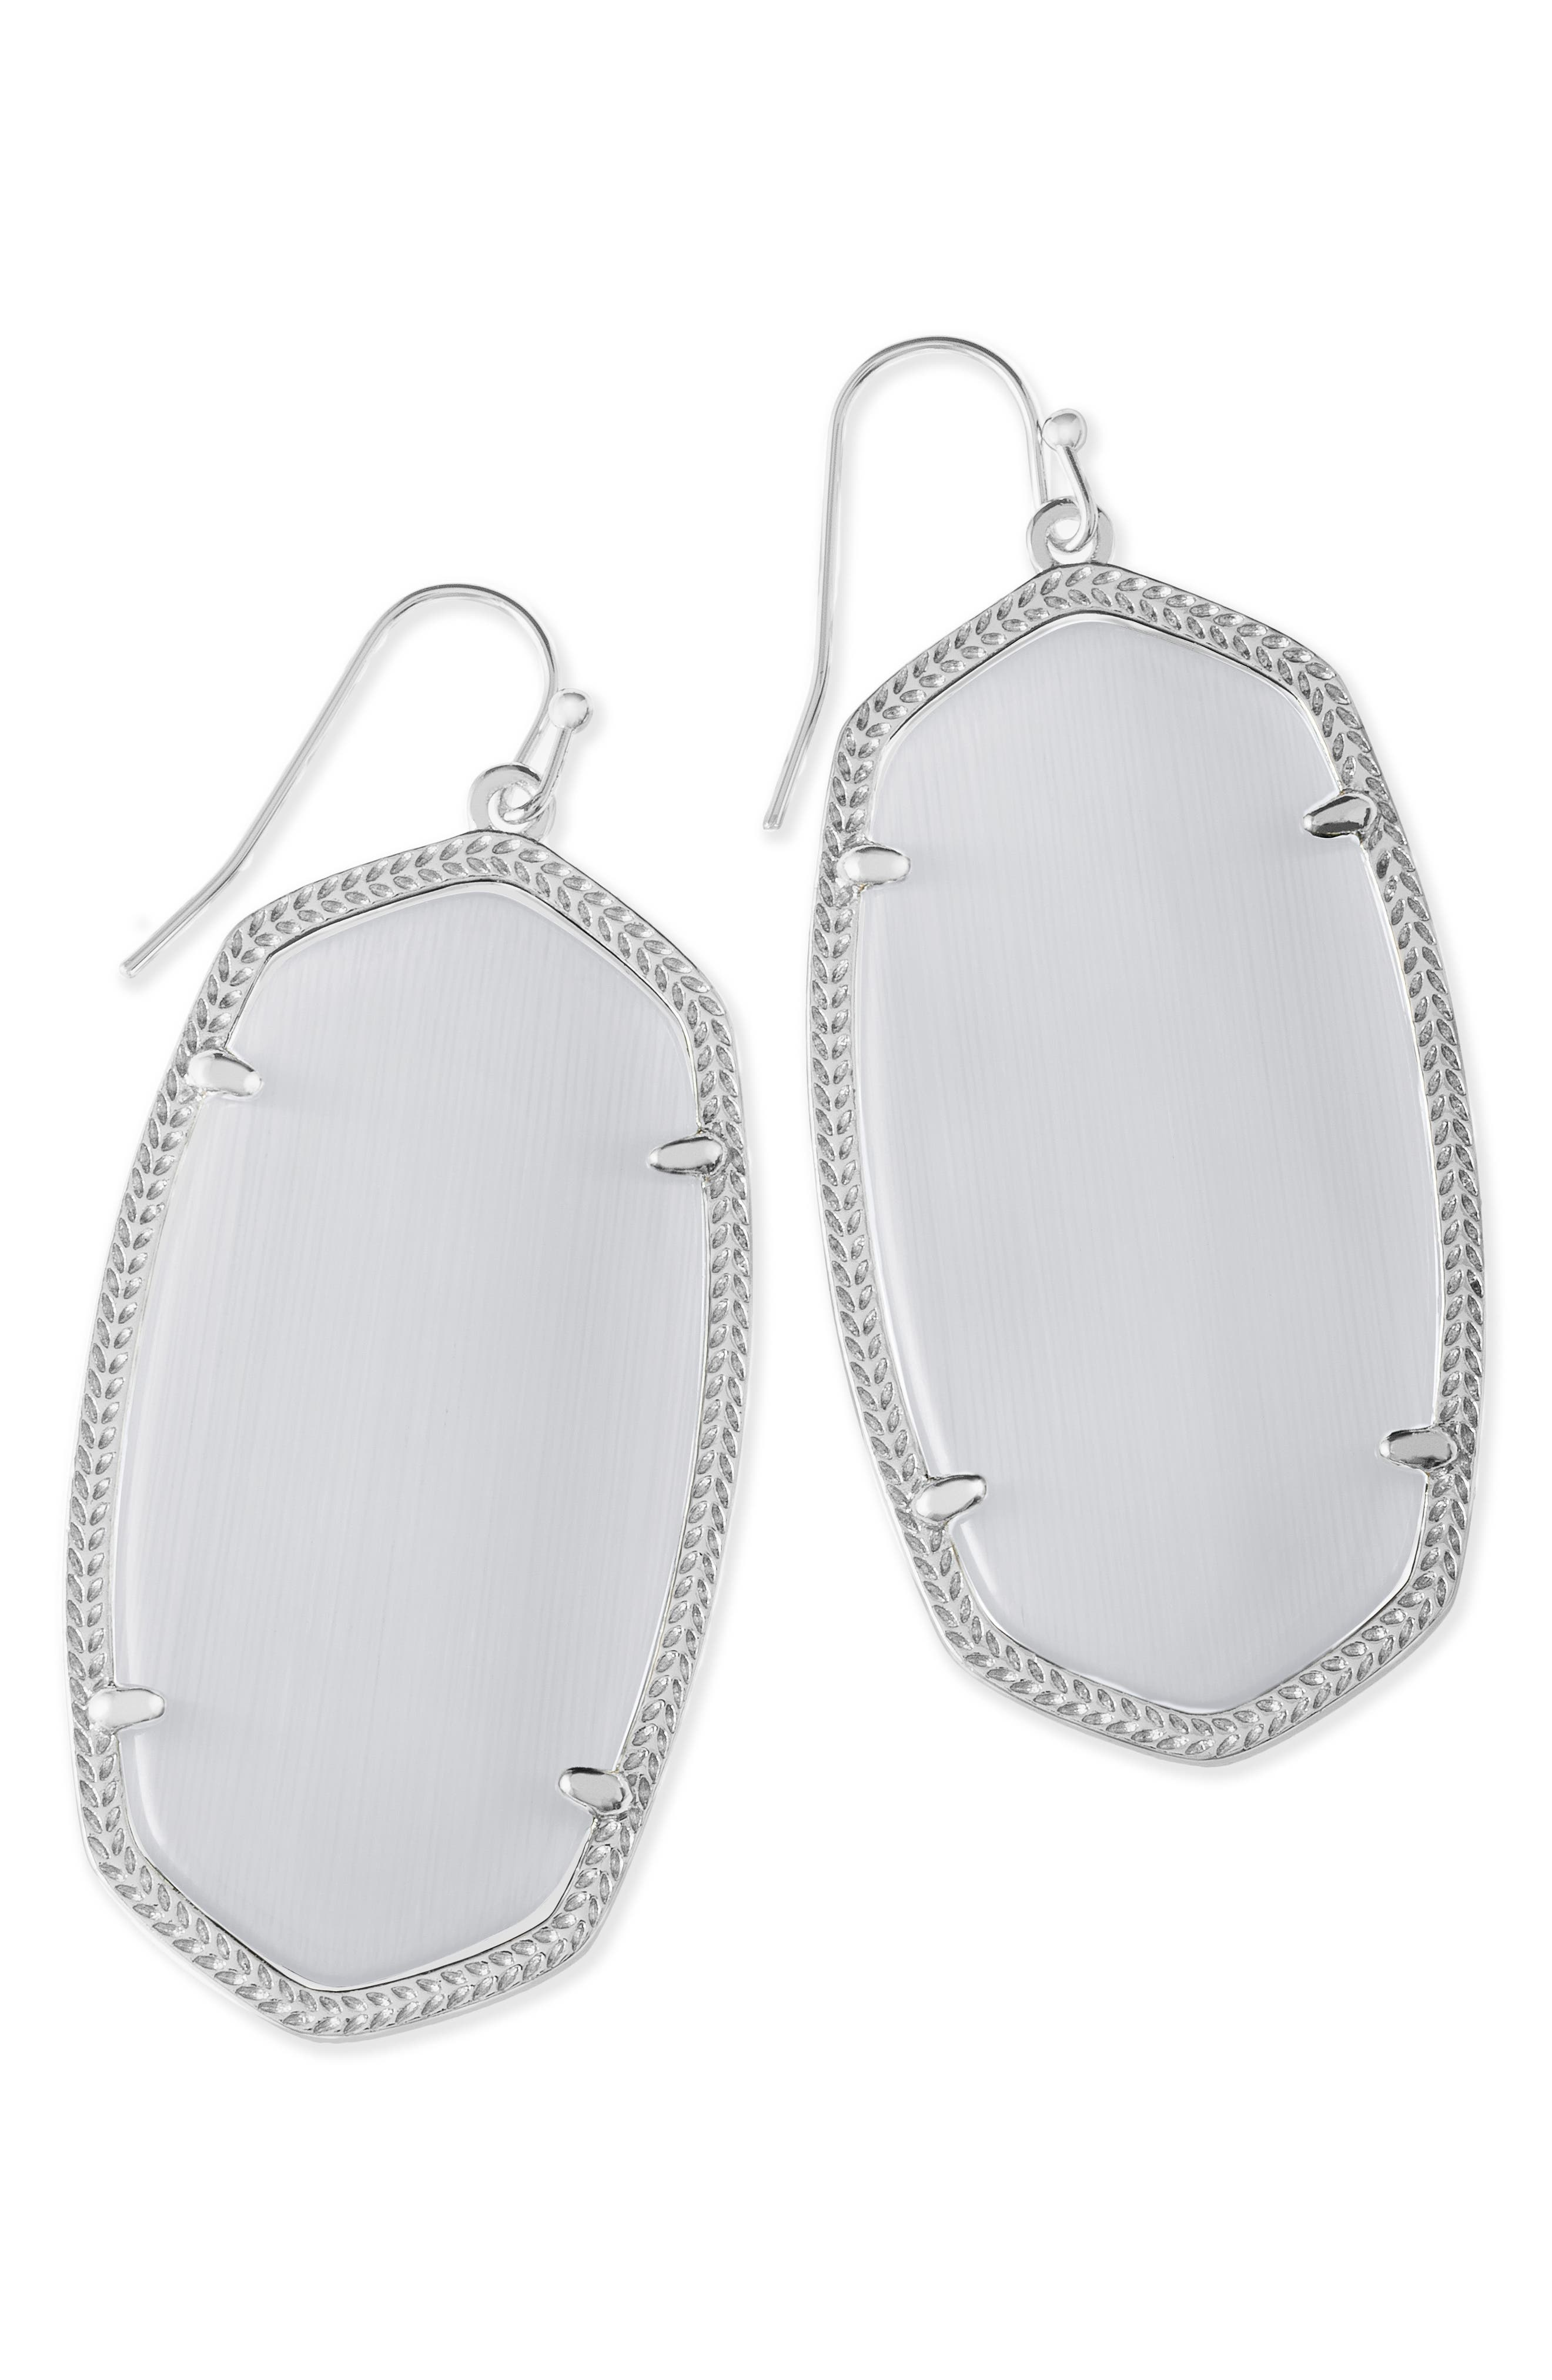 Danielle - Large Oval Statement Earrings,                             Alternate thumbnail 281, color,